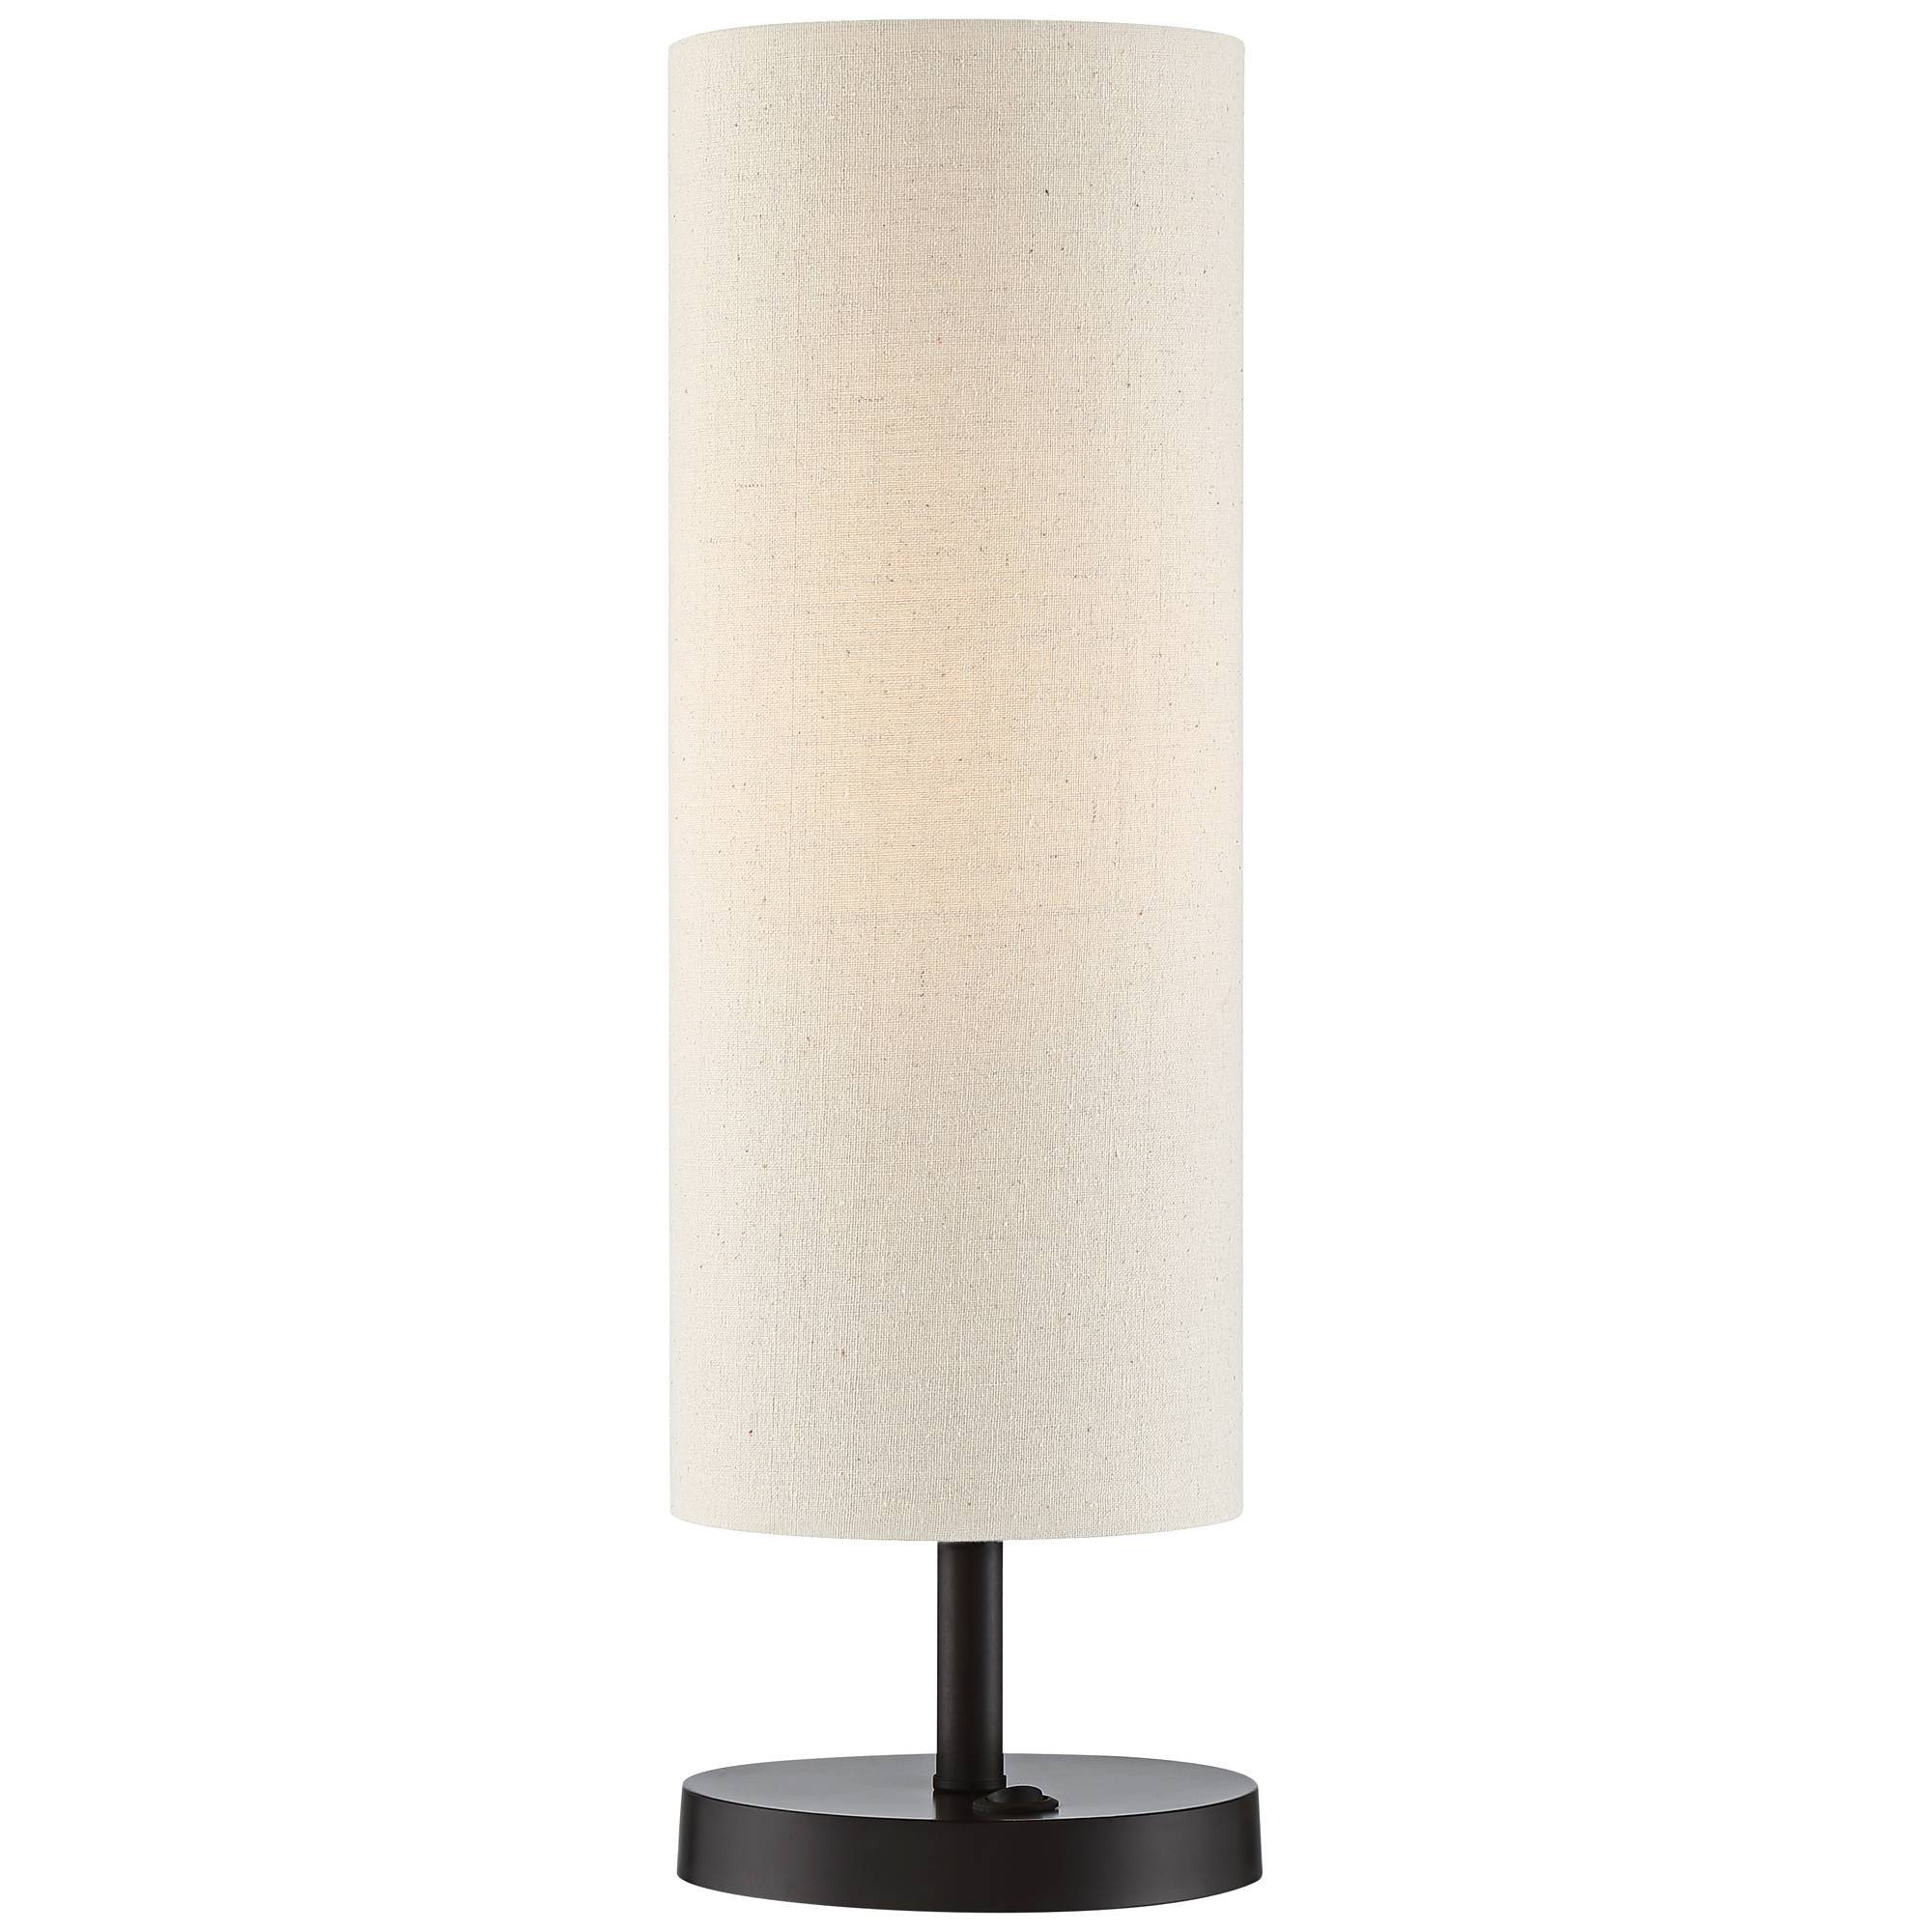 Heyburn Modern Accent Table Lamp With Hotel Style Usb And Ac Power Outlet In Base Dark